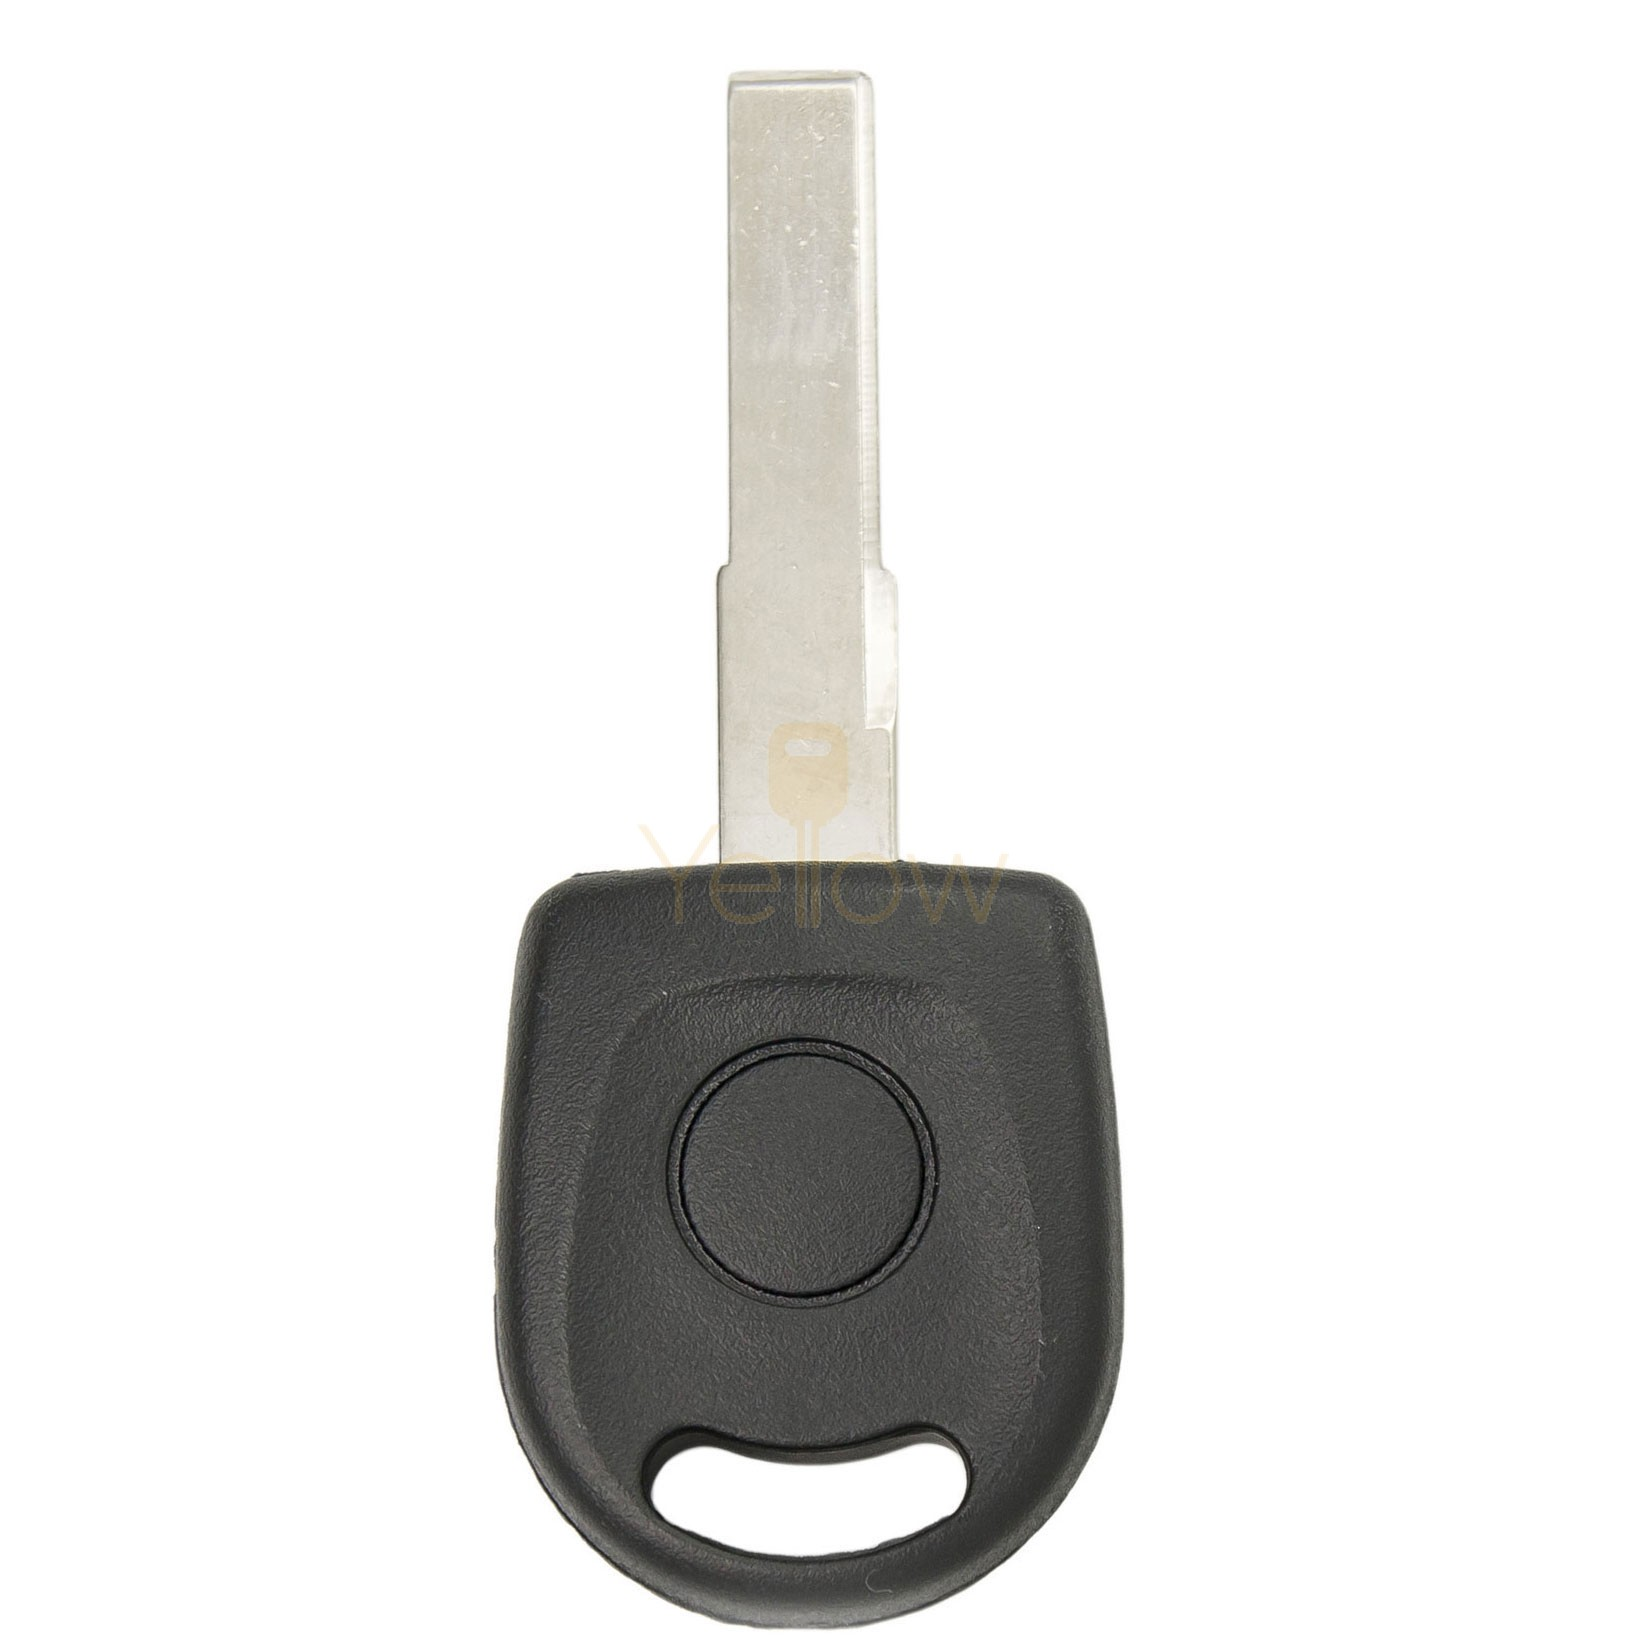 REPLACEMENT 2015-2020 VOLKSWAGEN MQB HU66 TRANSPONDER KEY